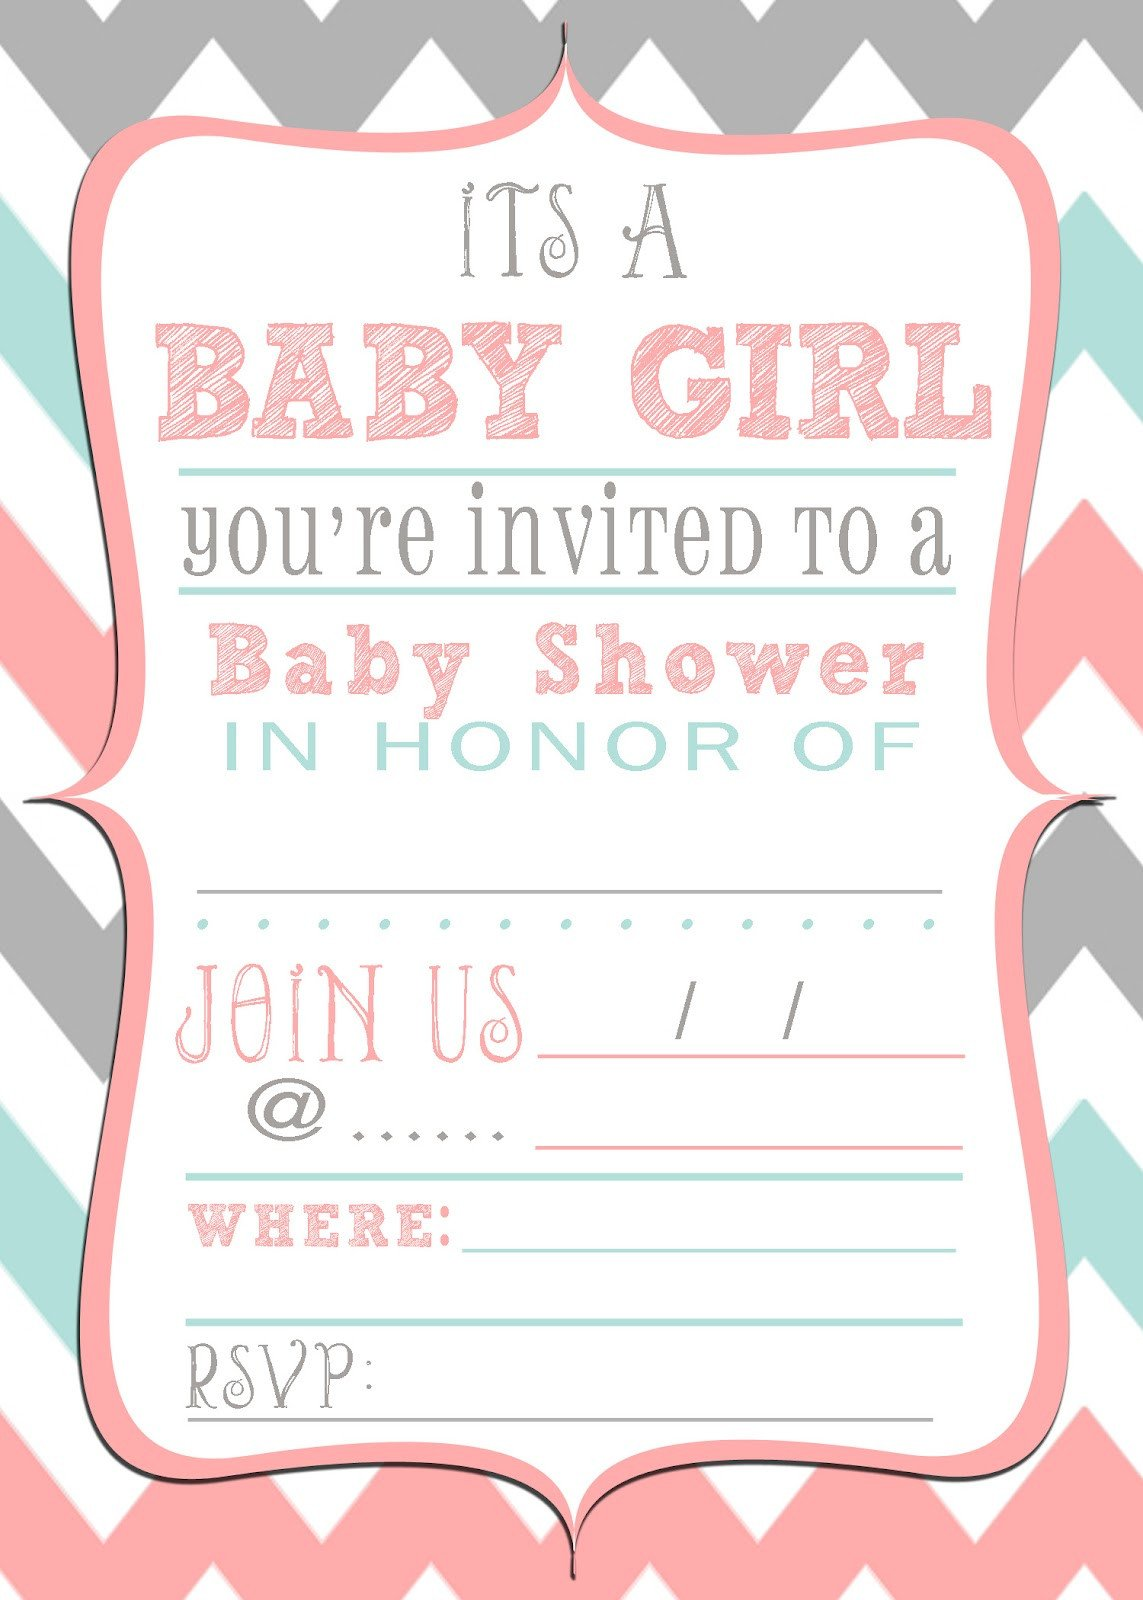 Baby Shower Templates Girl Mrs This and that Baby Shower Banner Free Downloads